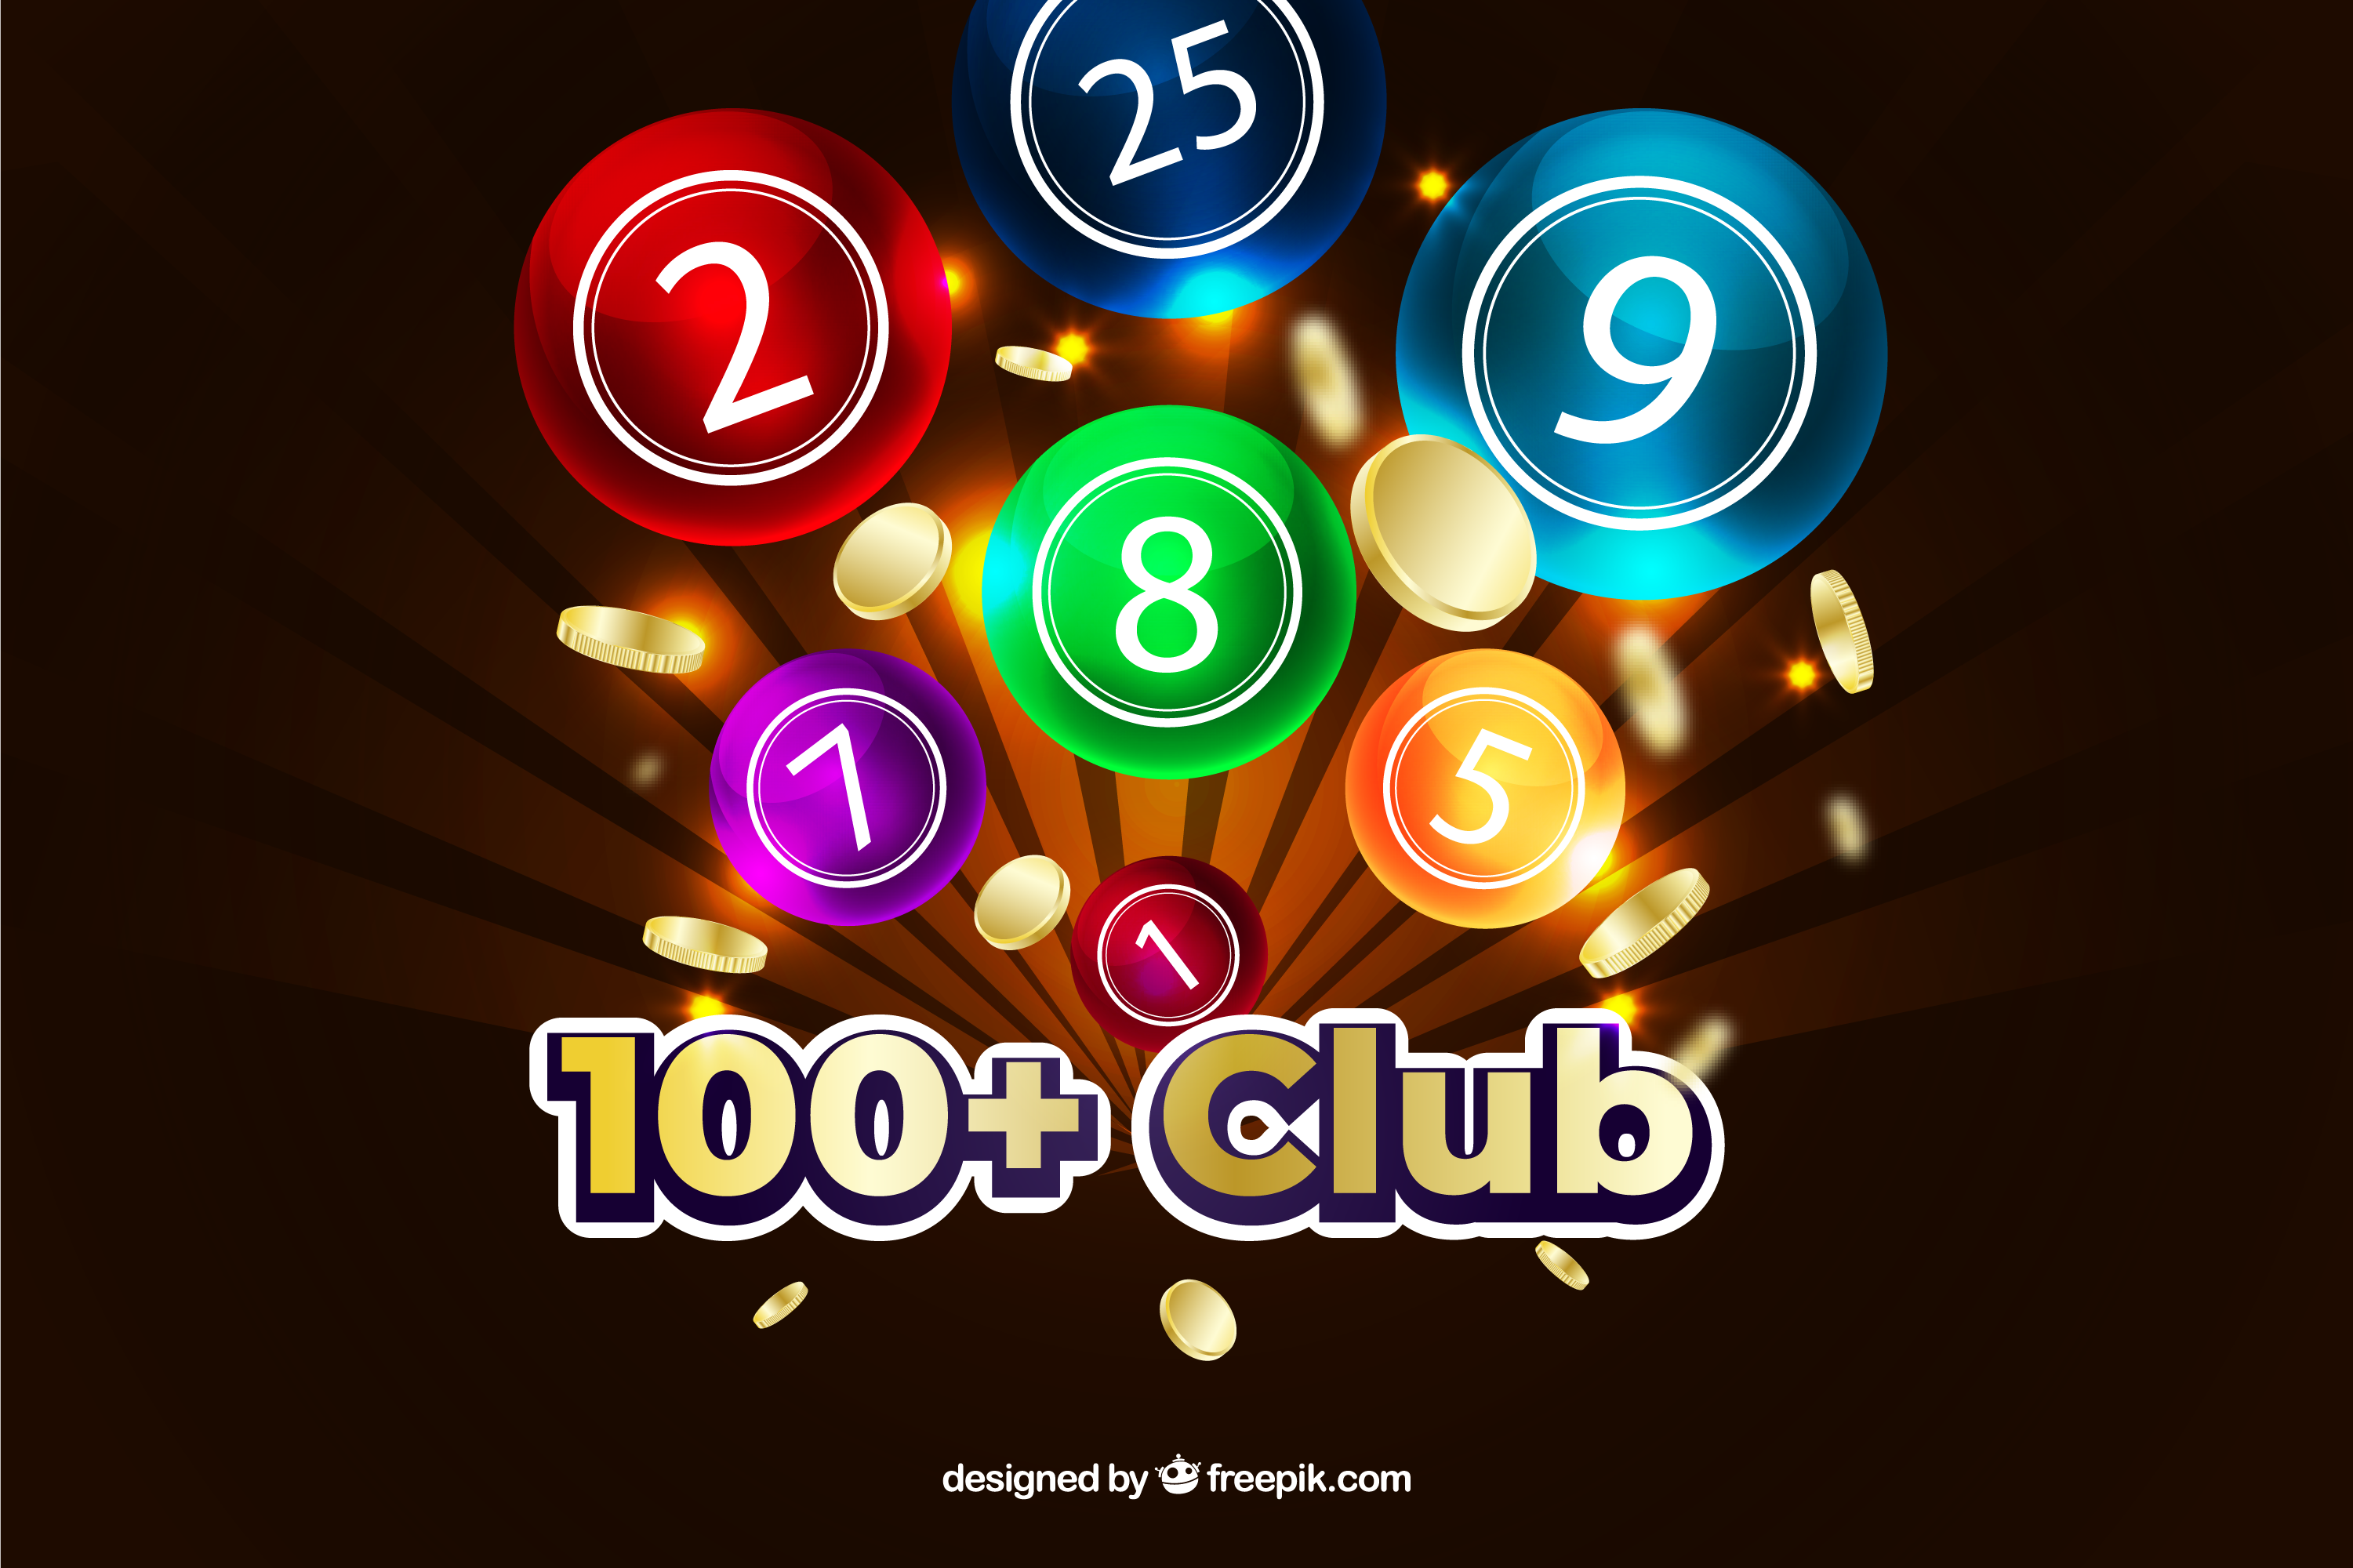 Join the 100+ Club